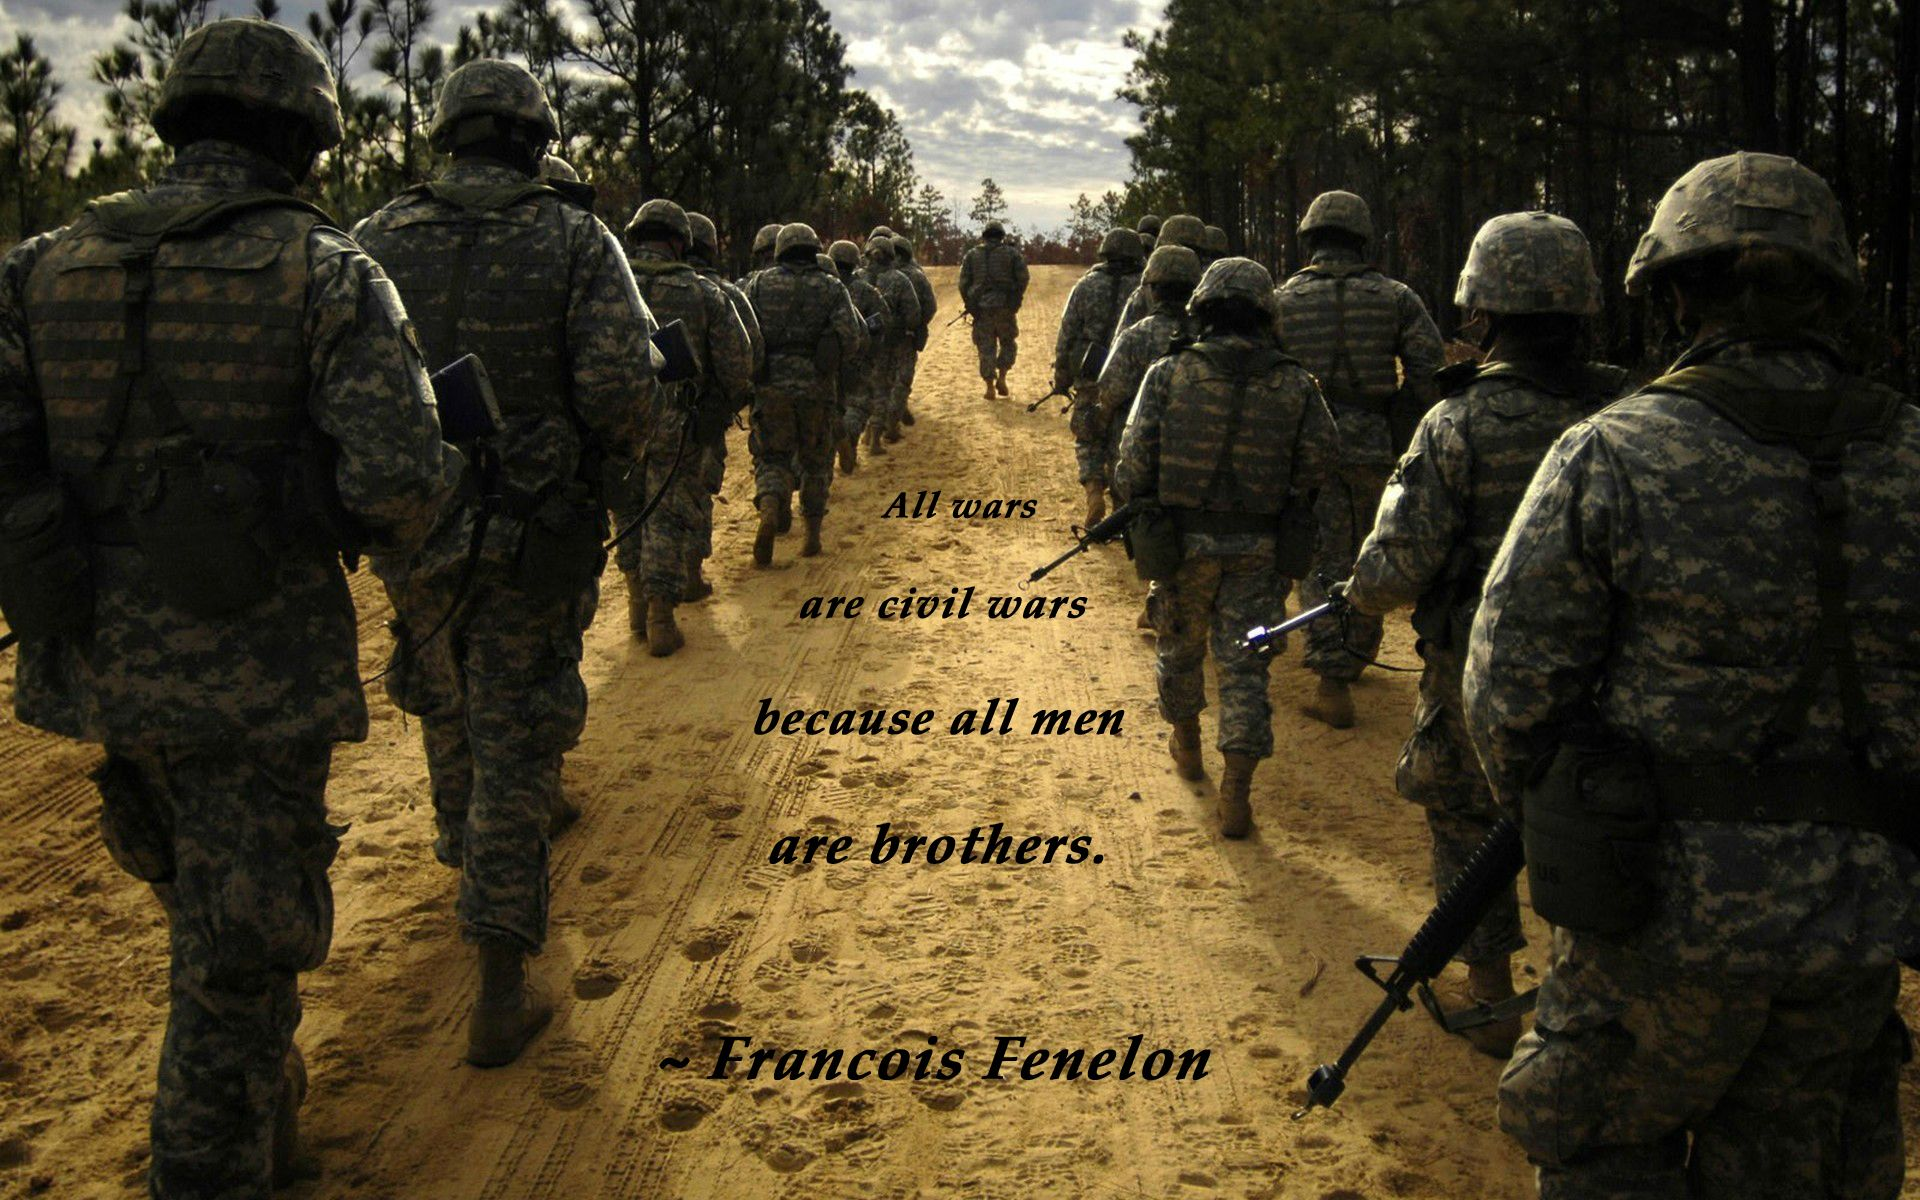 inspirational quotes for army basic training  quotesgram